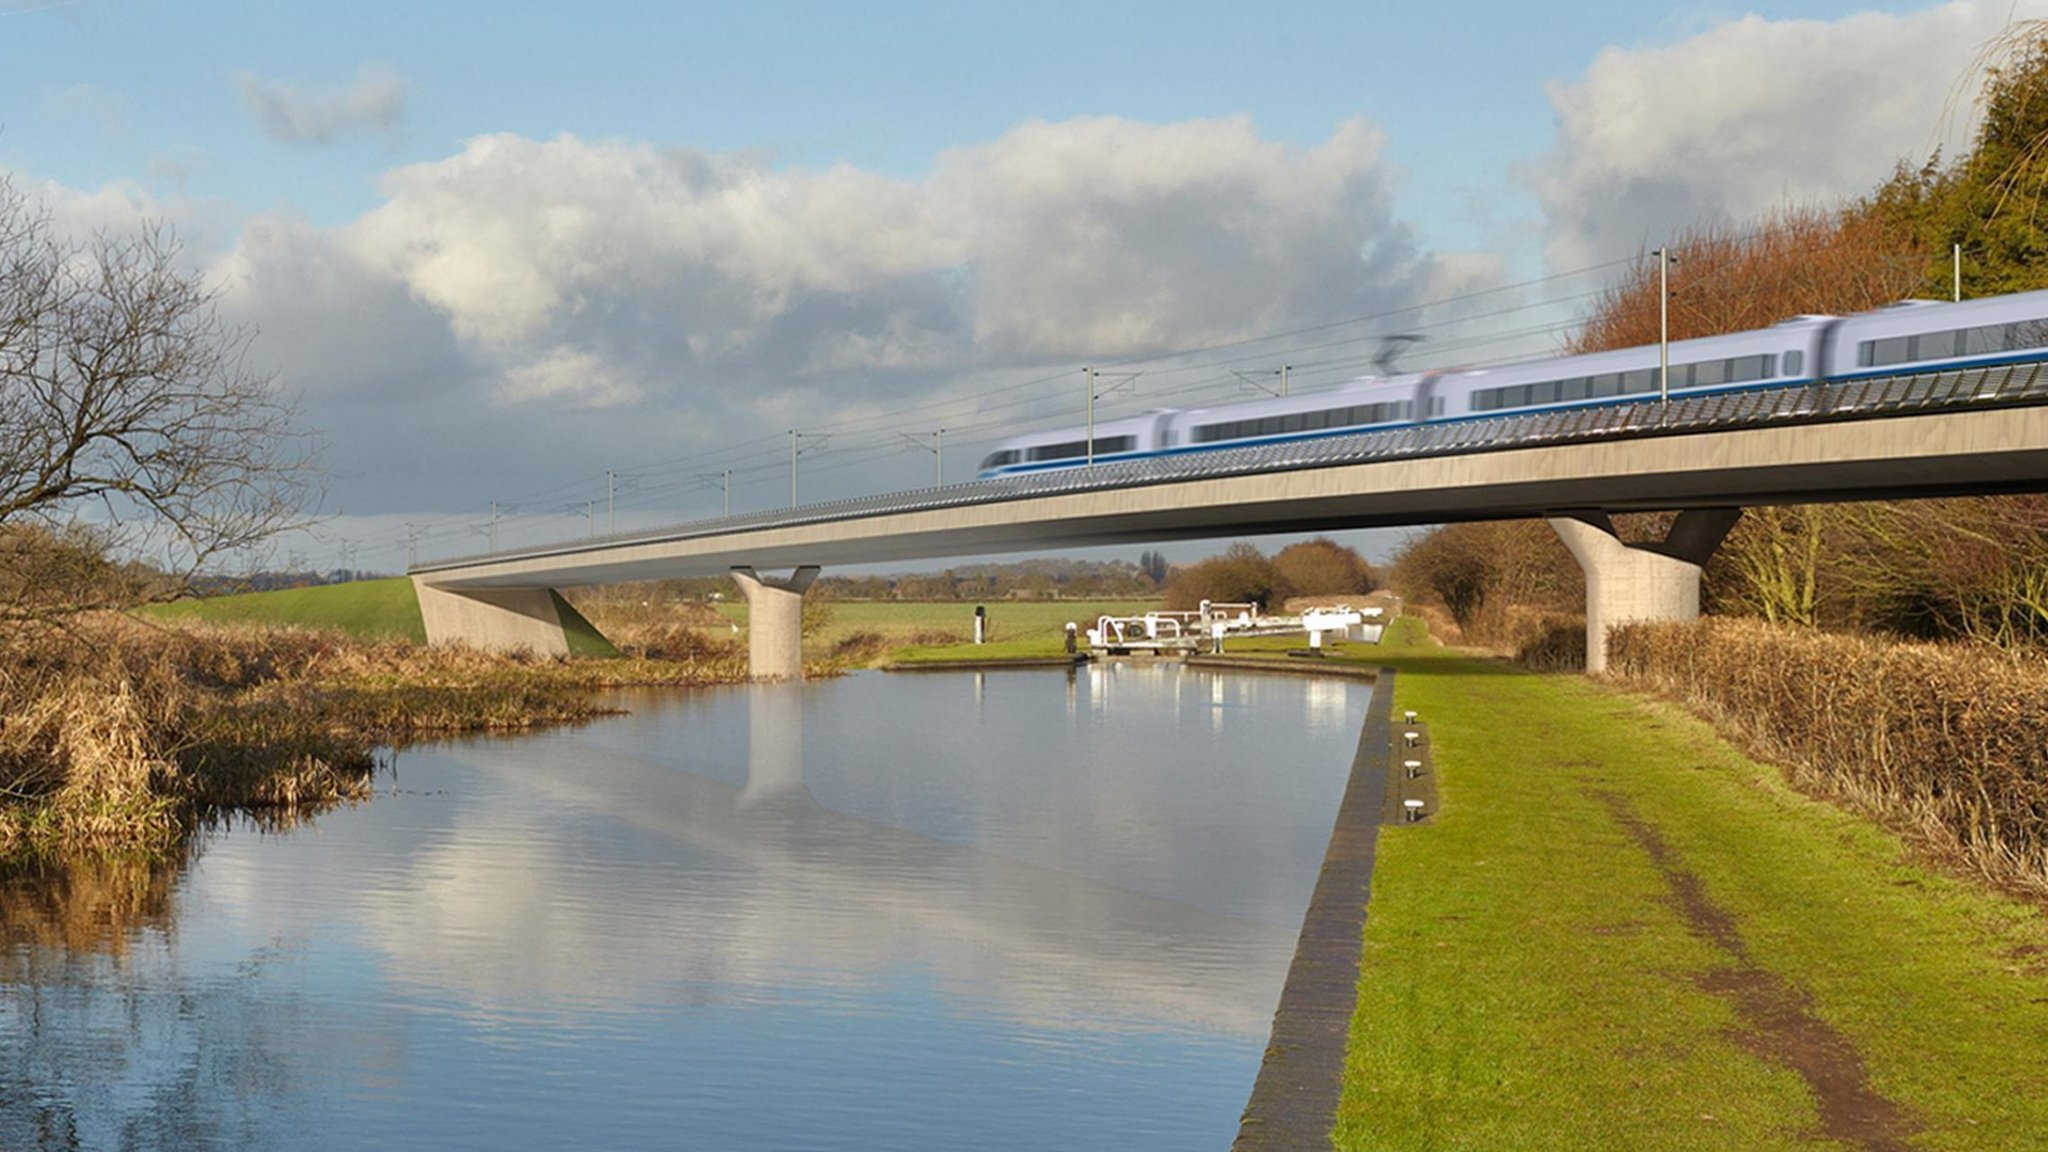 46 HS2 staff earn more than the prime minister's £150,000